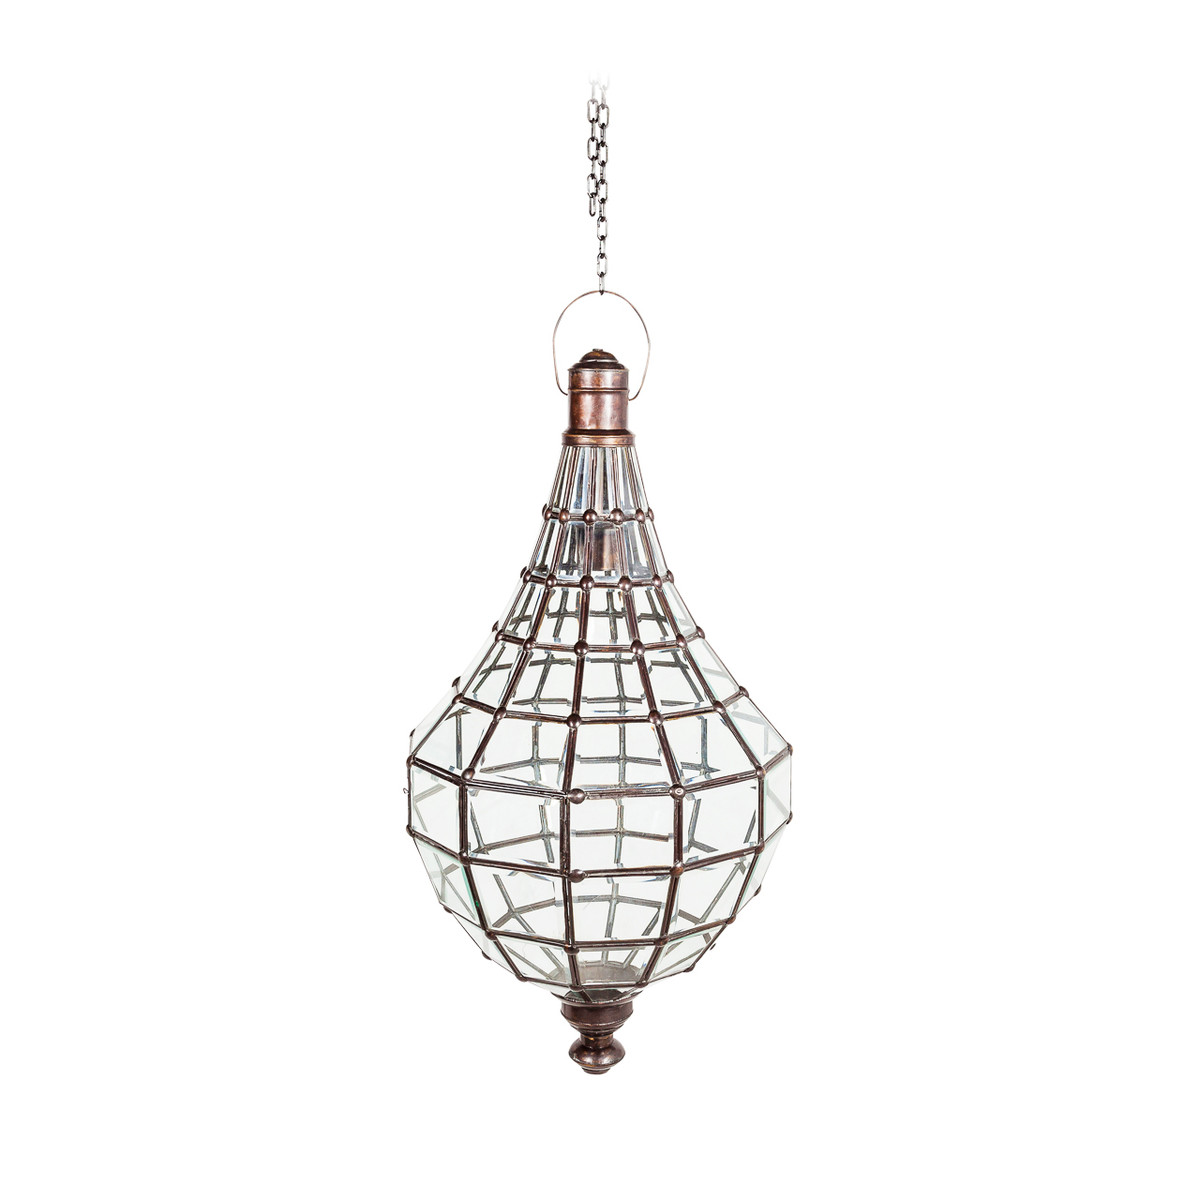 Image of: Large Metal Glass Pendant Lights Grand Moroccan Style